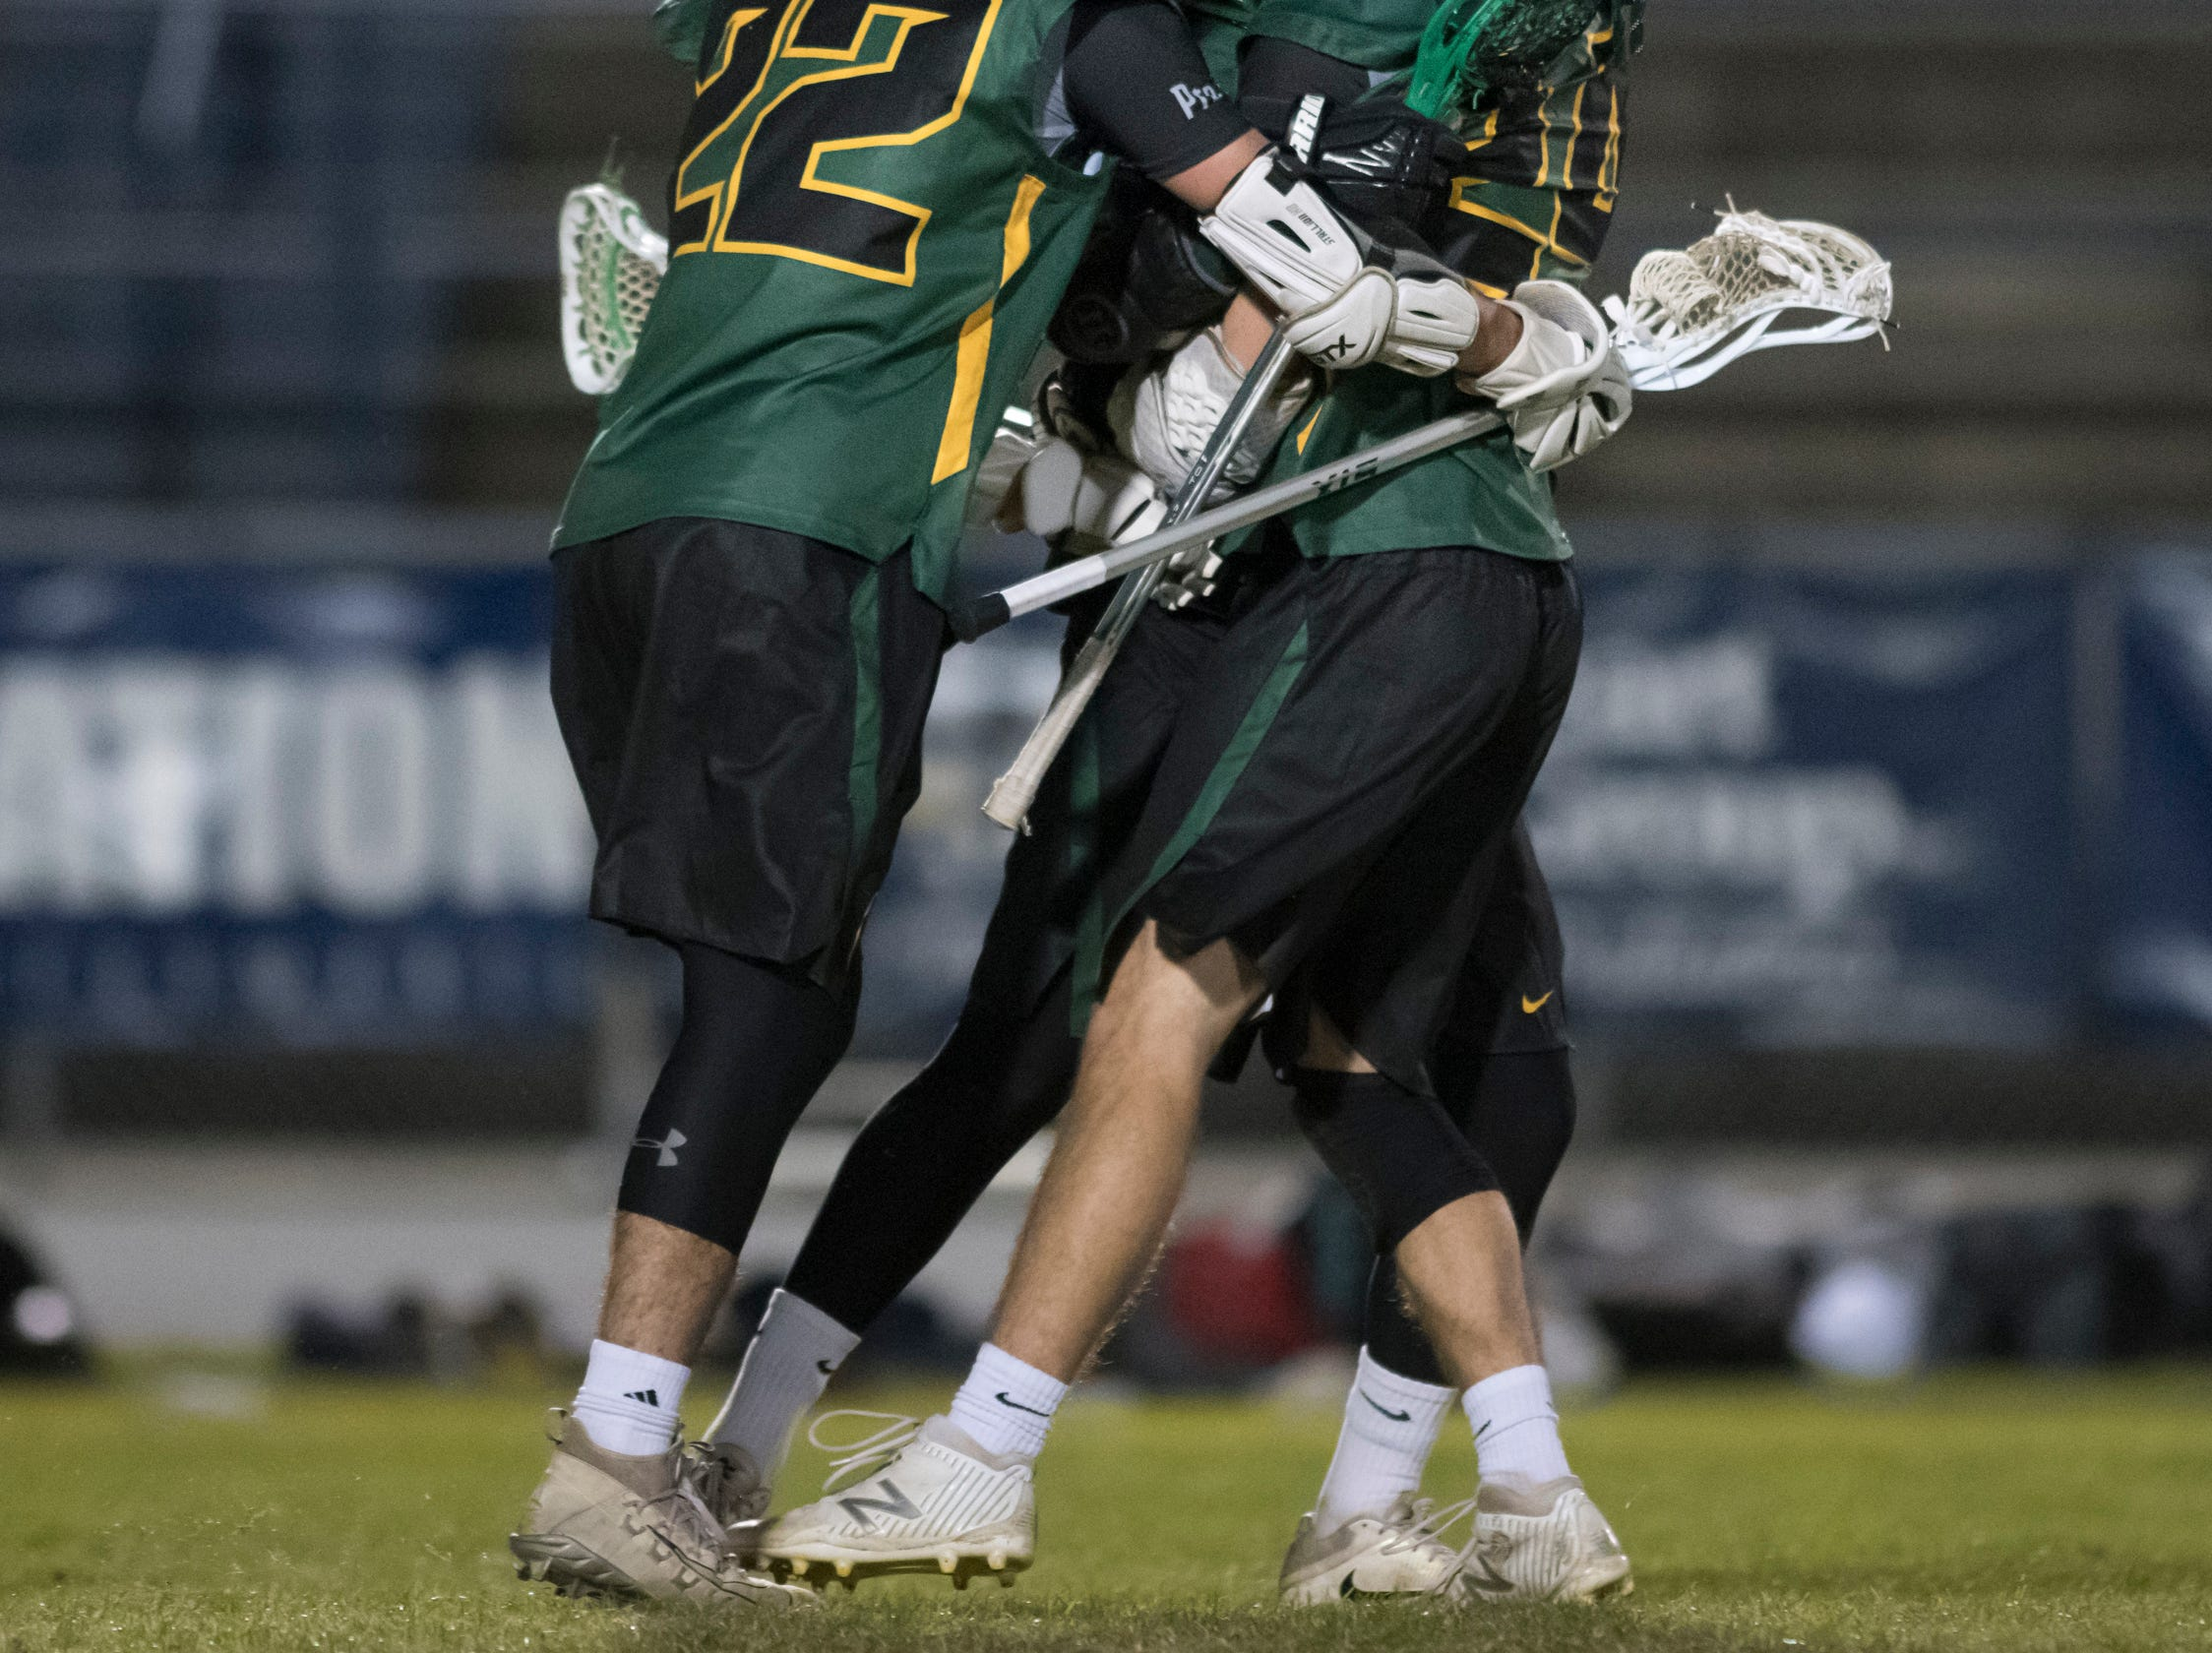 The Crusaders celebrate after scoring a goal during the Catholic vs. Gulf Breeze boys lacrosse game at Gulf Breeze High School on Wednesday, March 6, 2019.